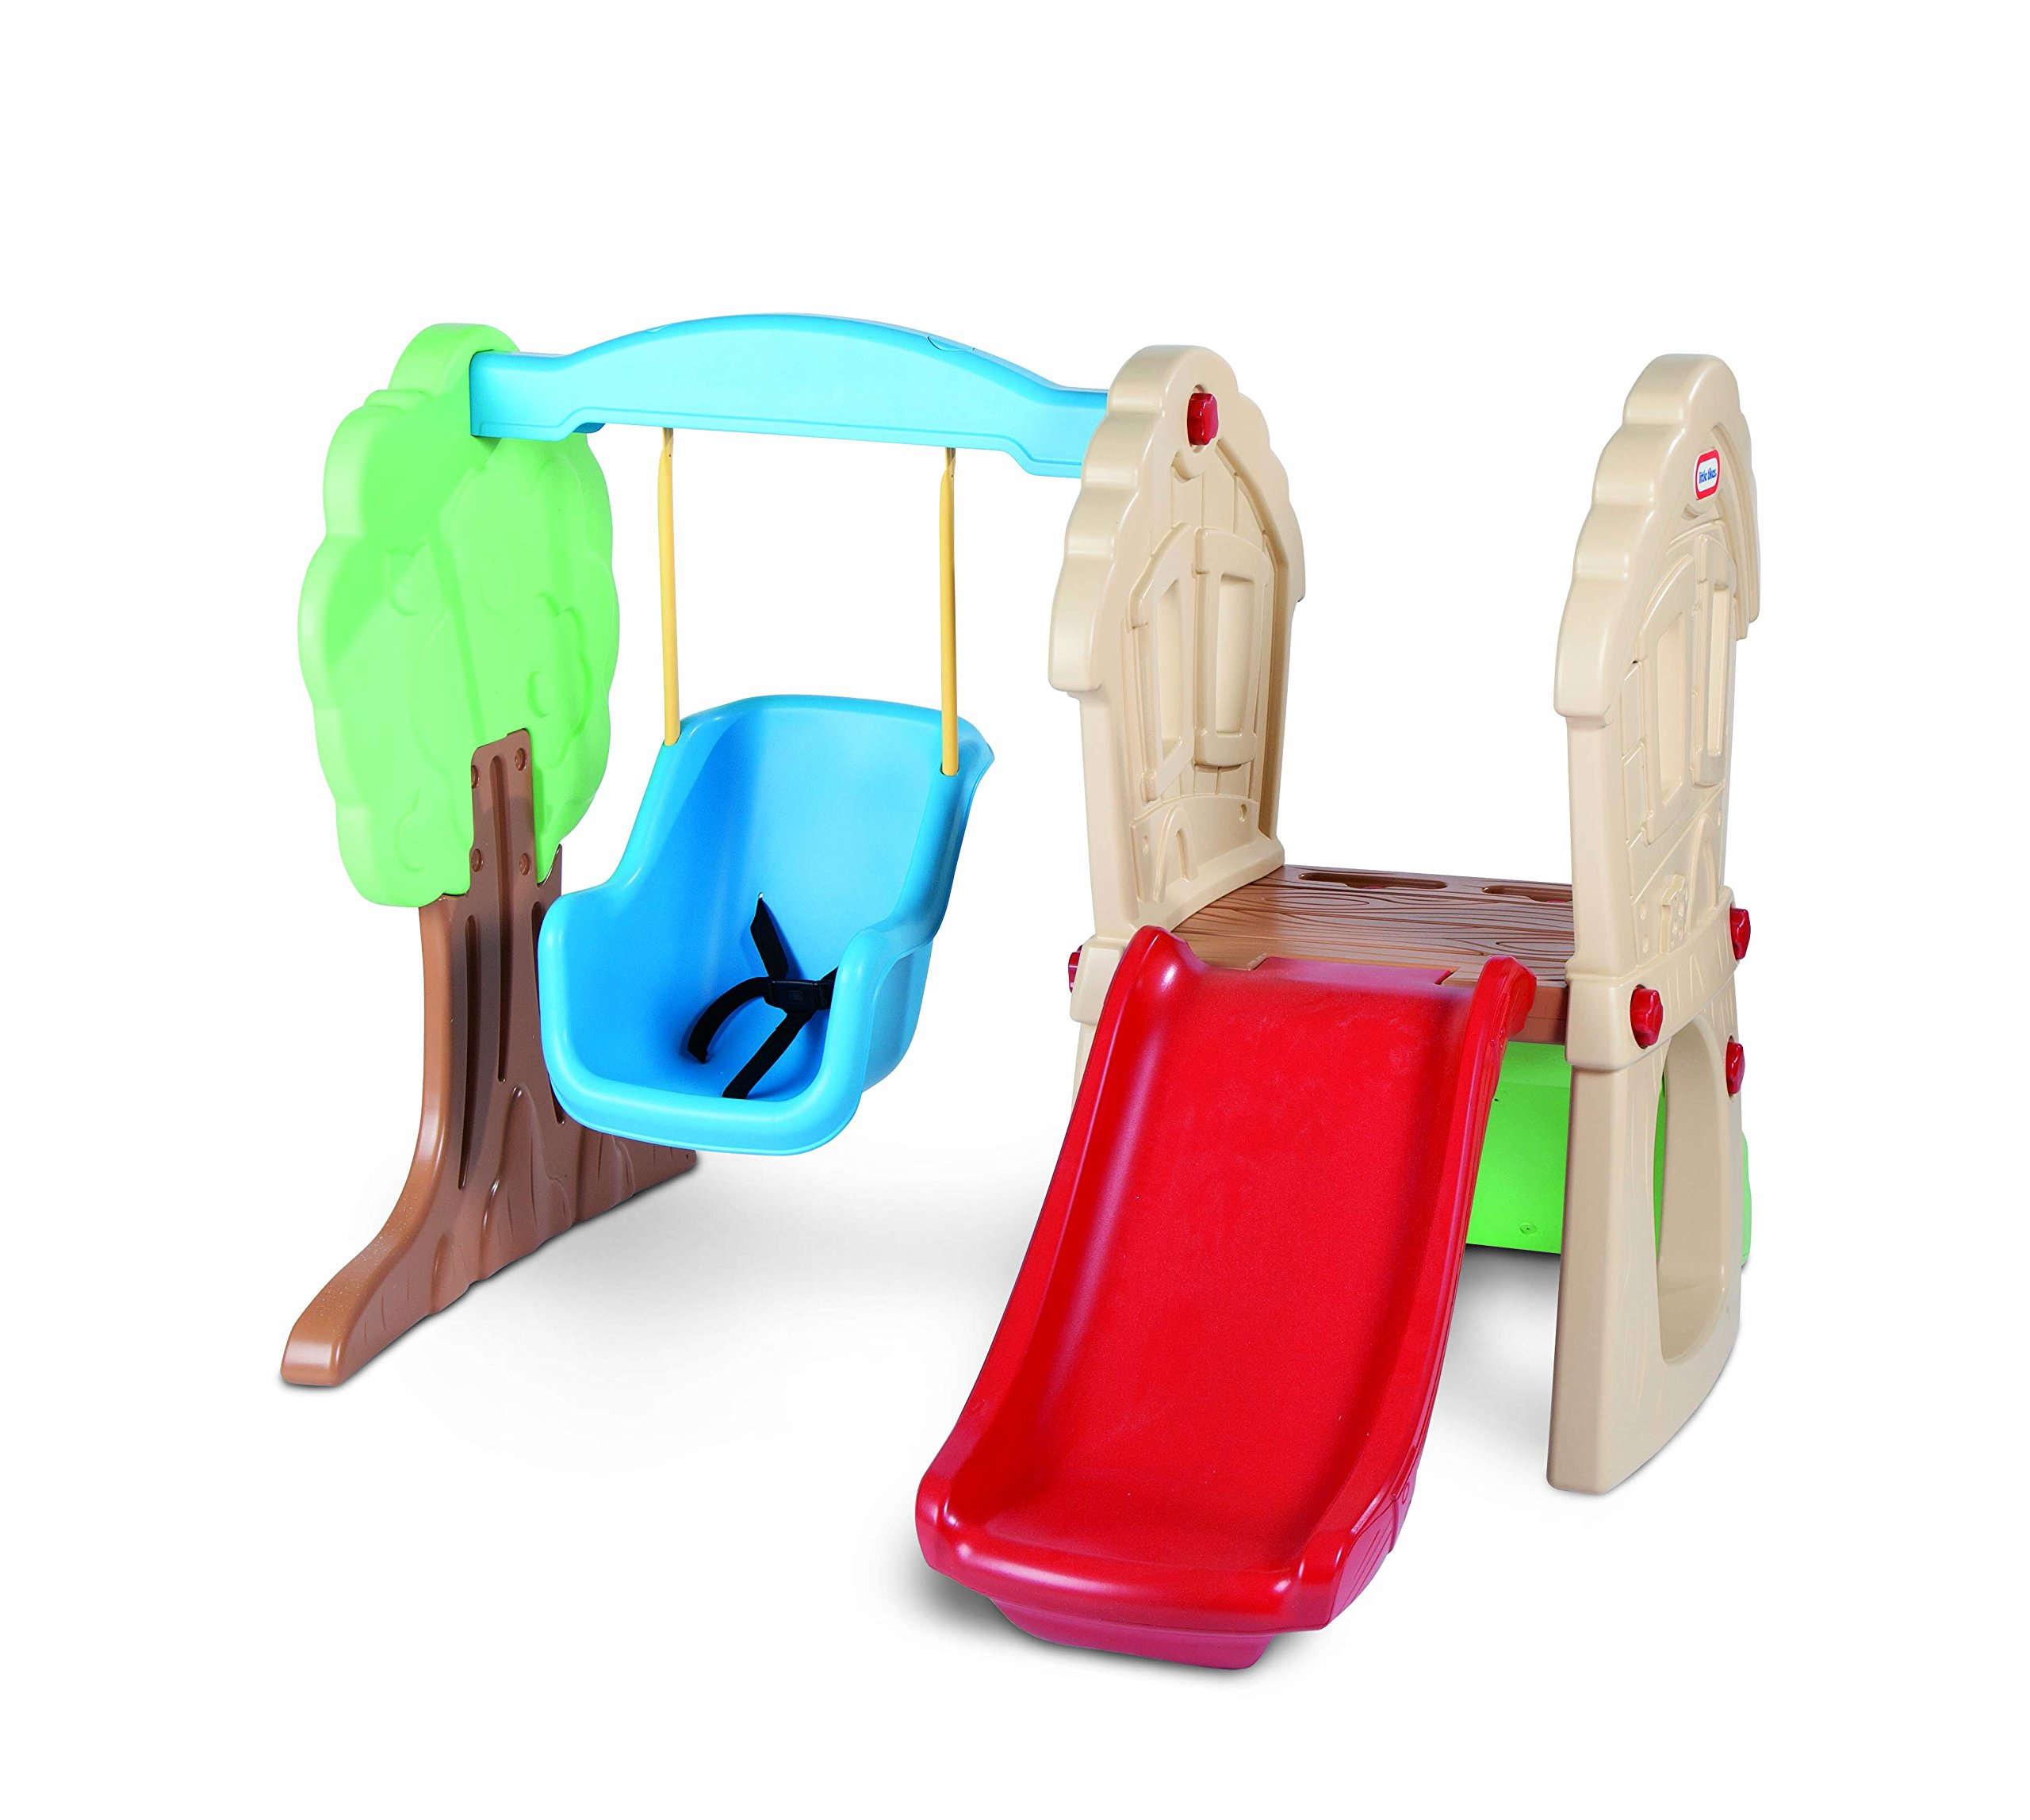 Little Tikes Hide and Seek Climber and Swing by Little Tikes